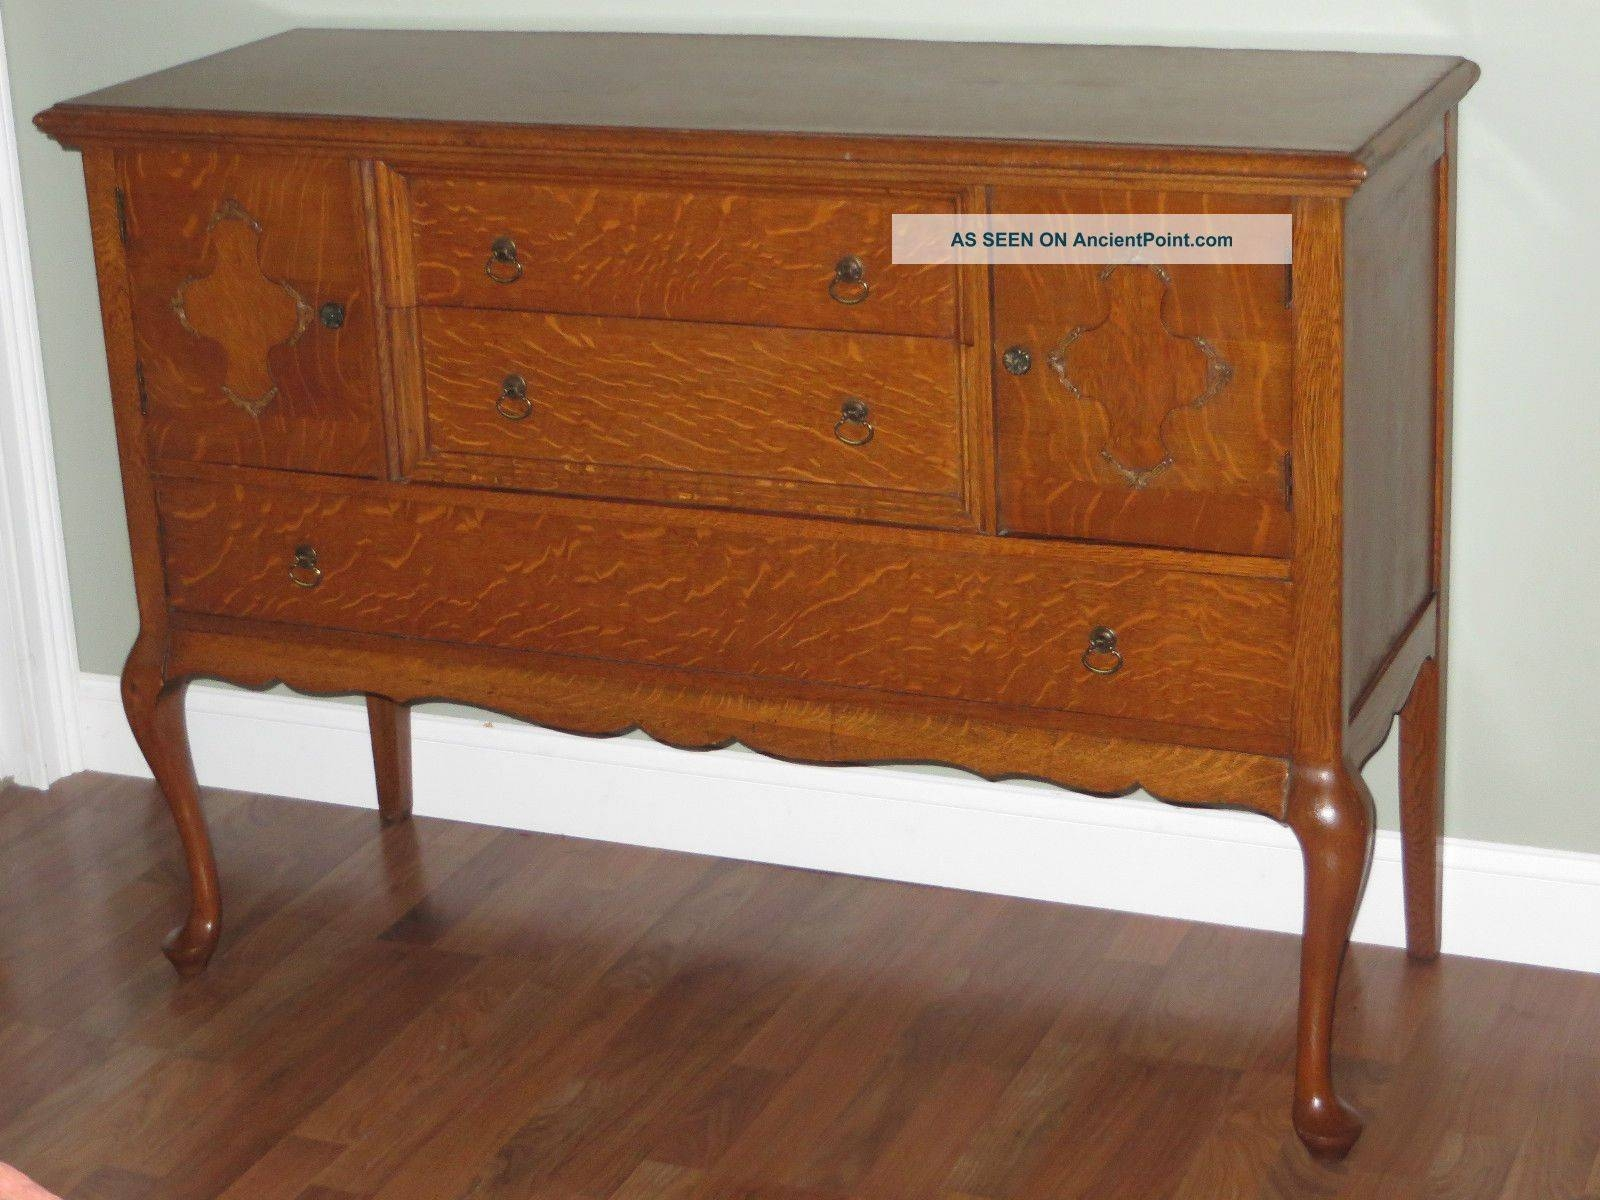 Antique Buffet Value Antique Tiger Oak Sideboard Buffet Server Pertaining To Recent Antique Sideboards (#2 of 15)